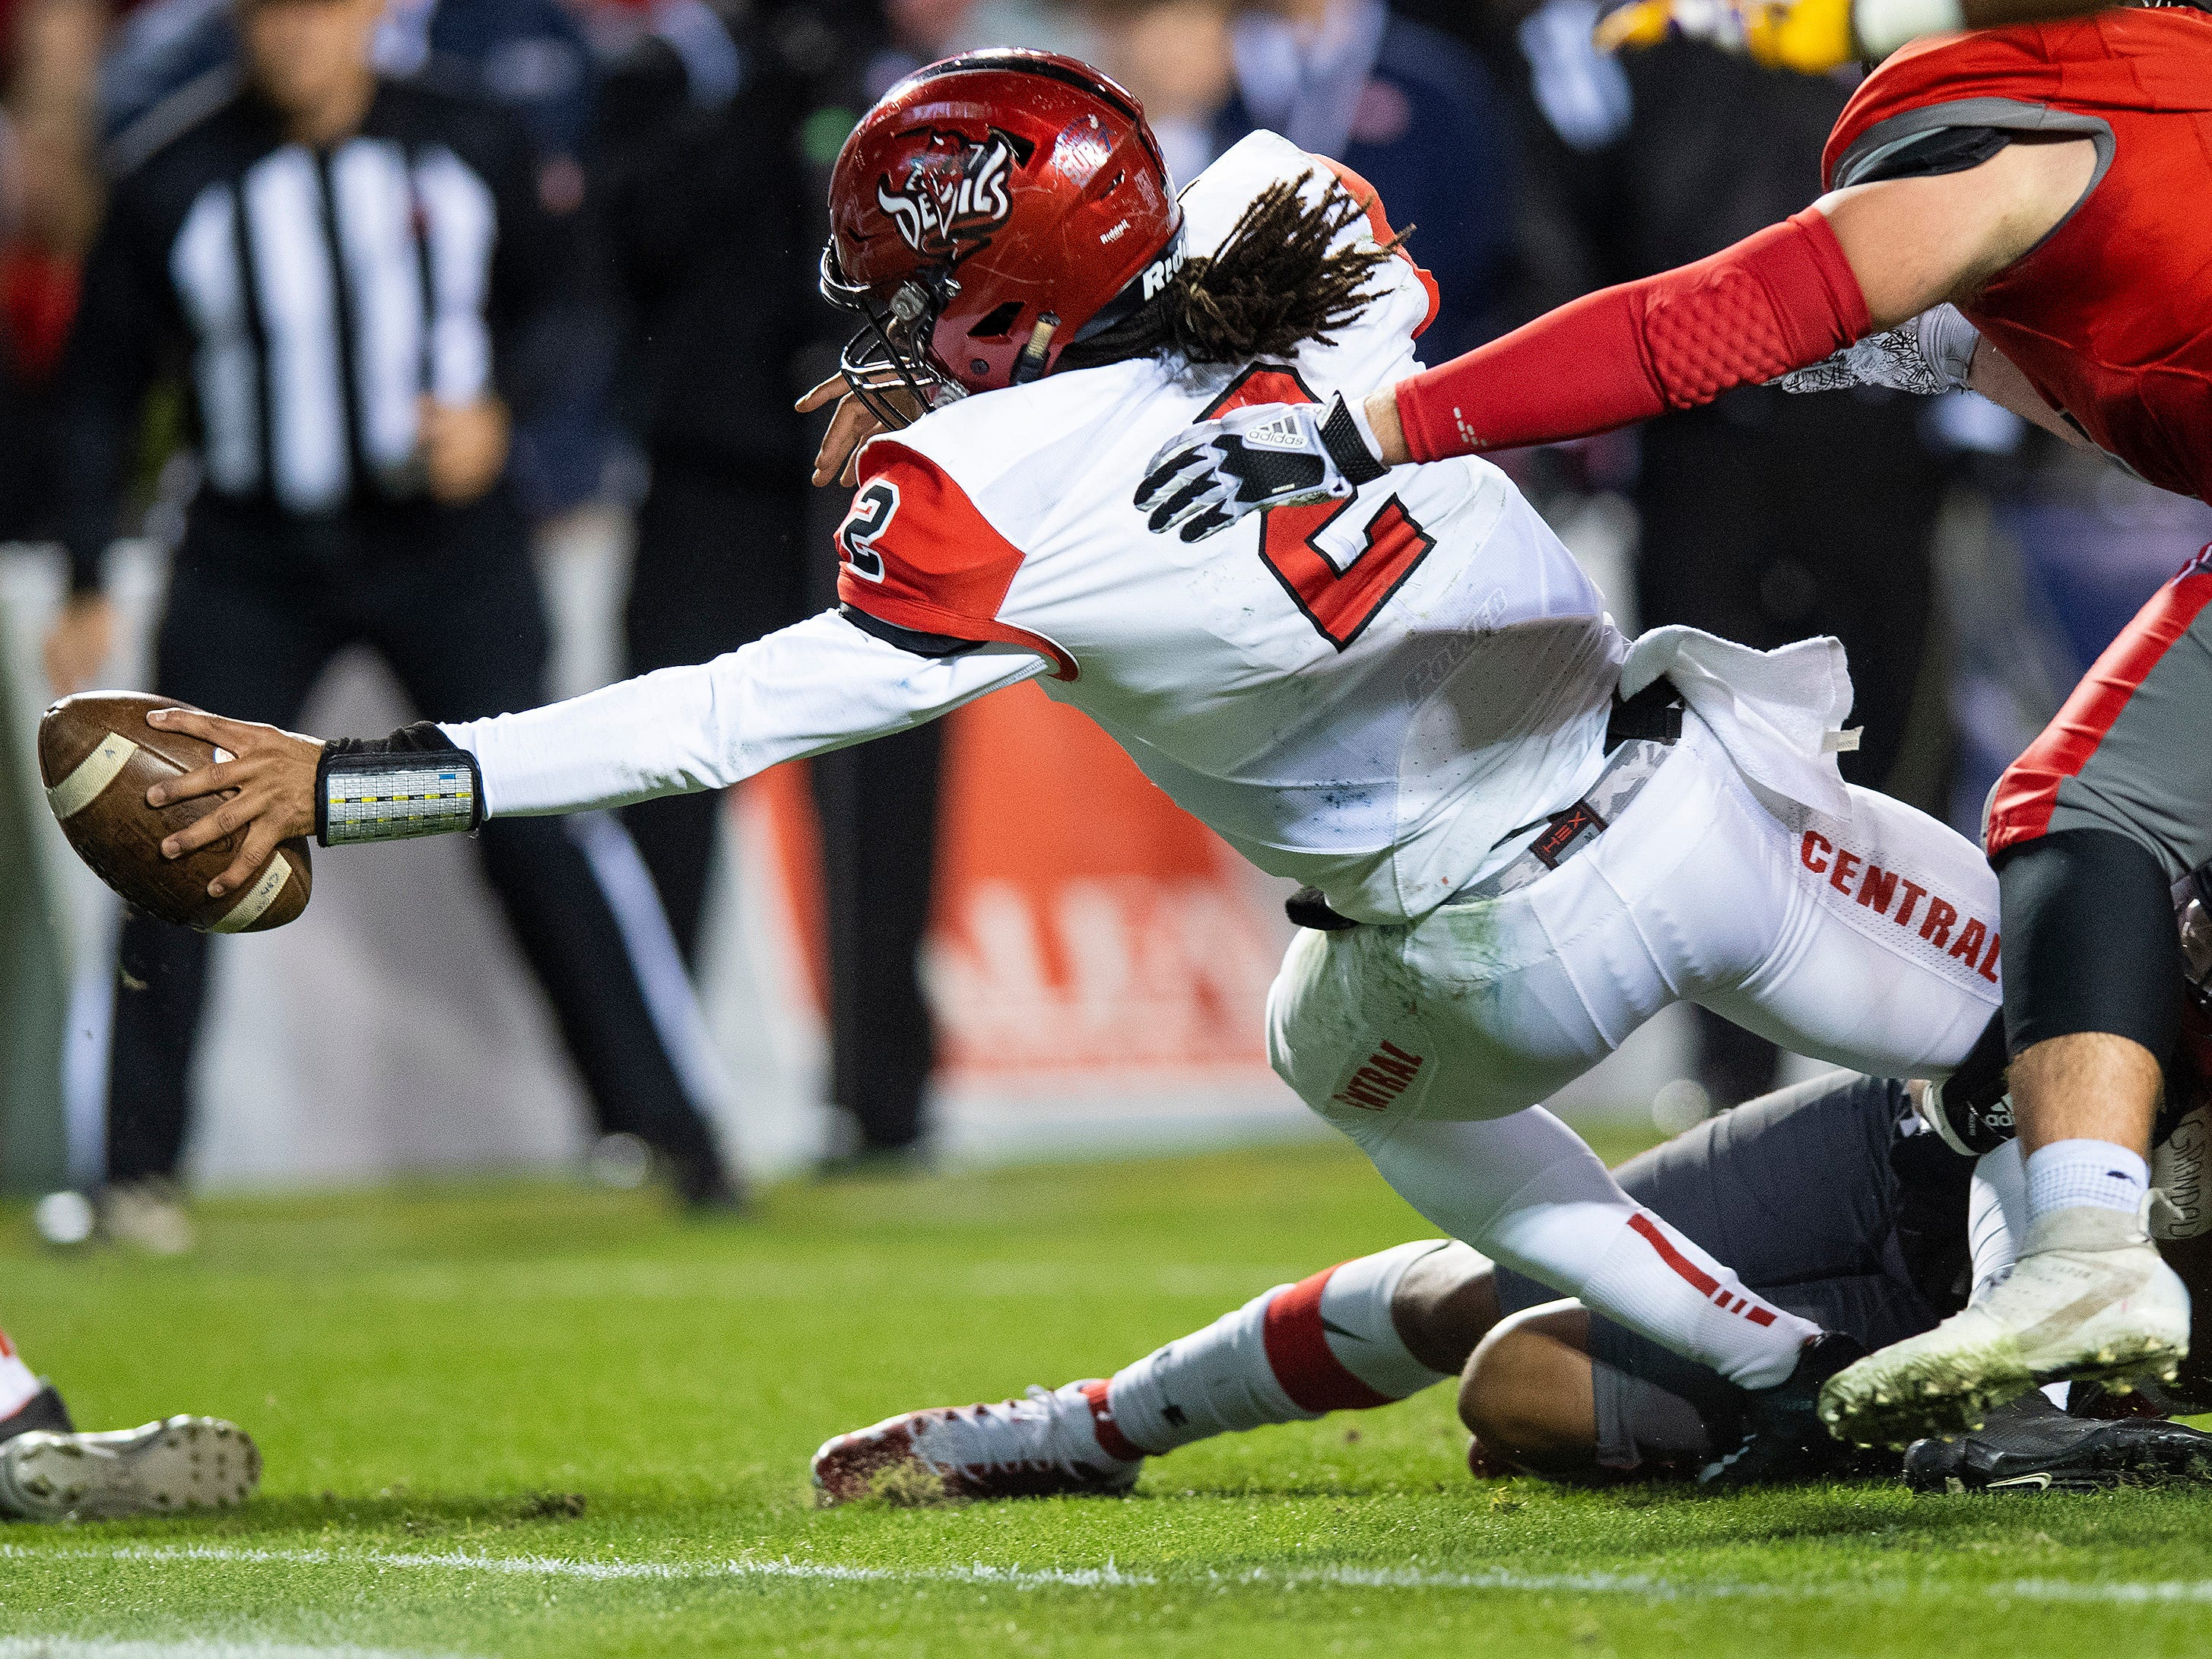 Central-Phenix City's Peter Parrish reaches the ball over the goal line for a touchdown against Thompson during the AHSAA Class 7A State Championship Football Game at Jordan Hare Stadium in Auburn, Ala., on Wednesday evening December 5, 2018.